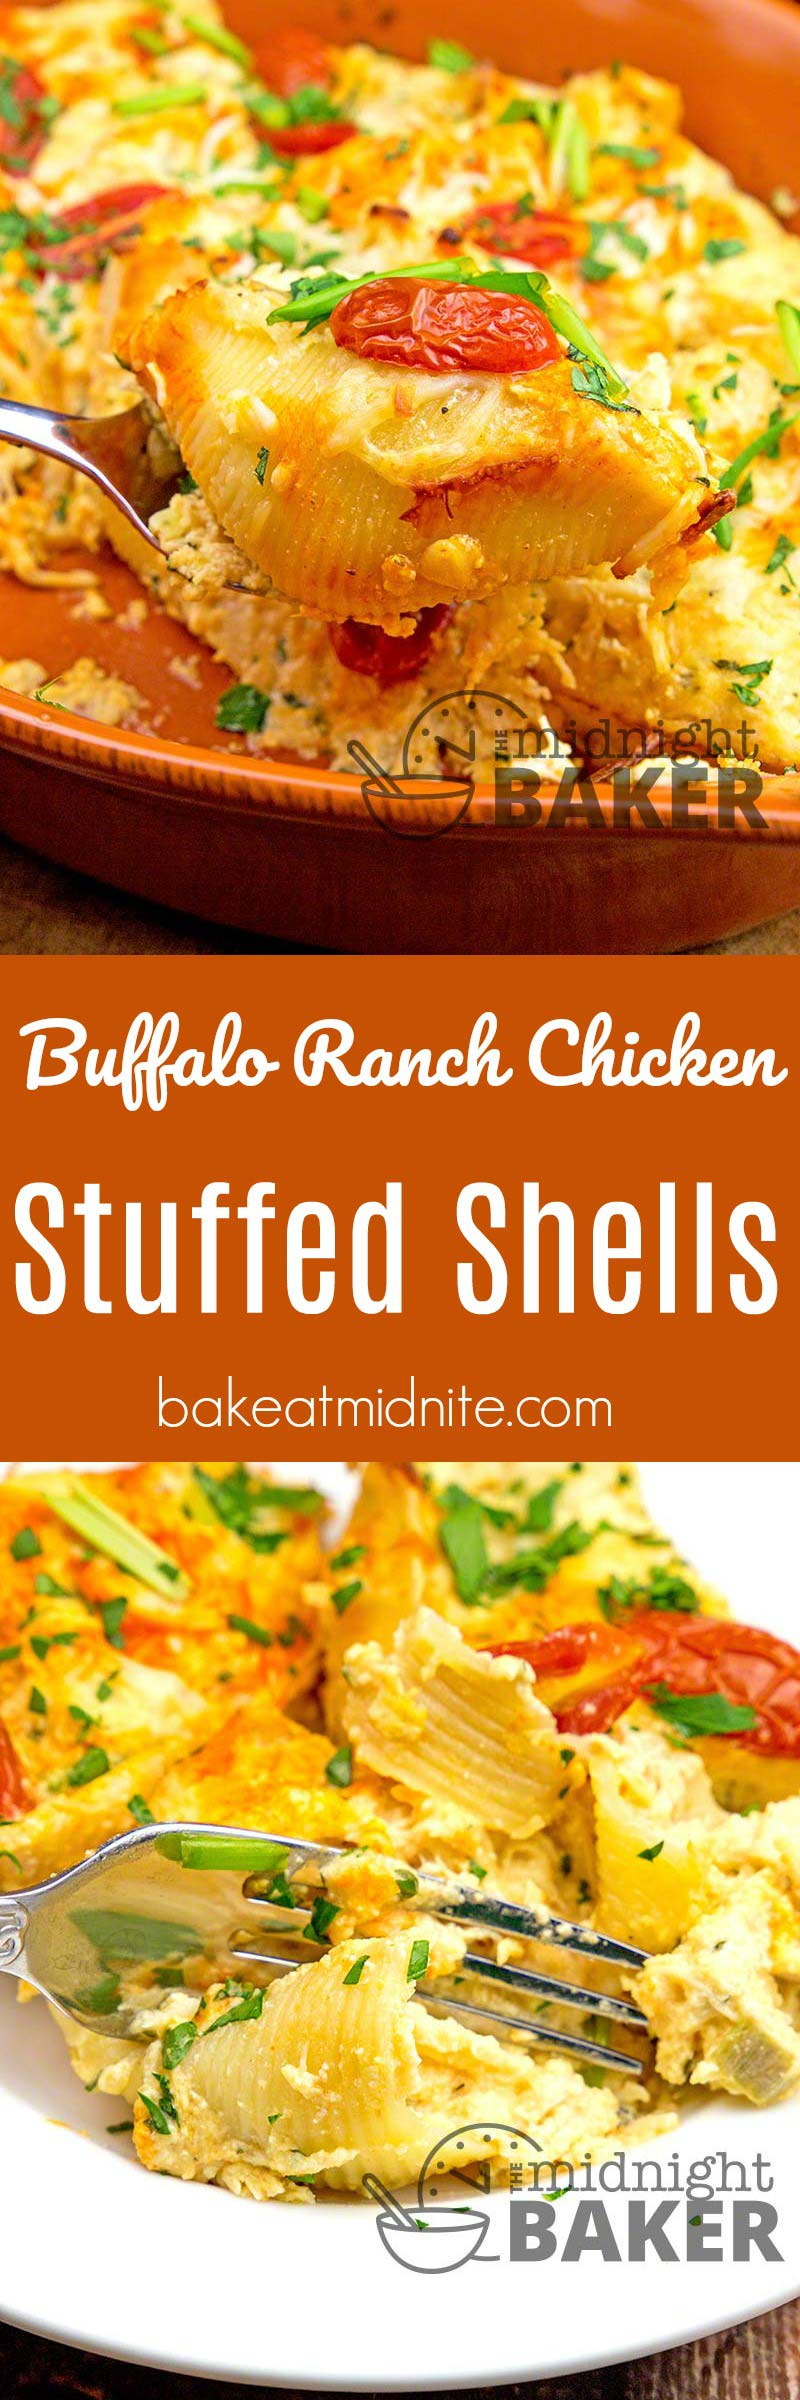 If you love buffalo chicken and a hint of ranch flavoring, you'll love these stuffed pasta shells.